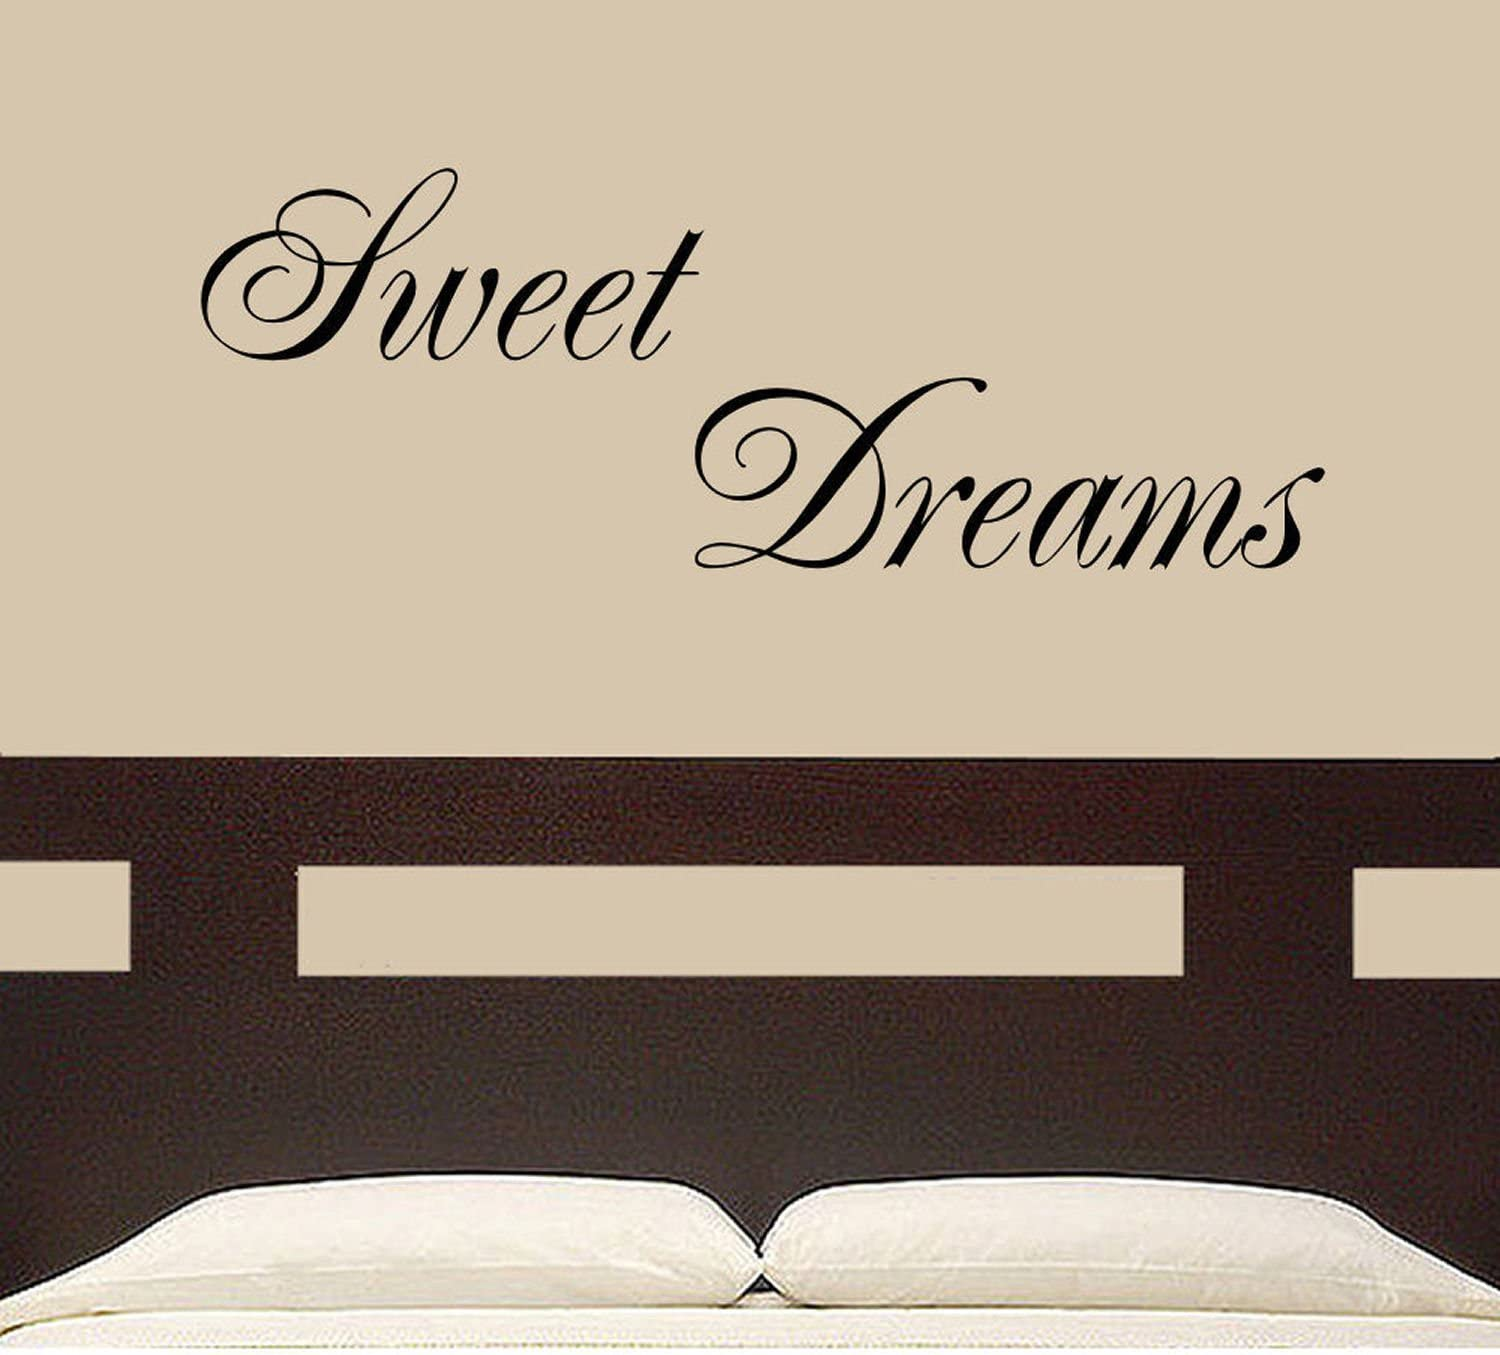 Sweet dreams wall sticker art decal quotes bedroom w43